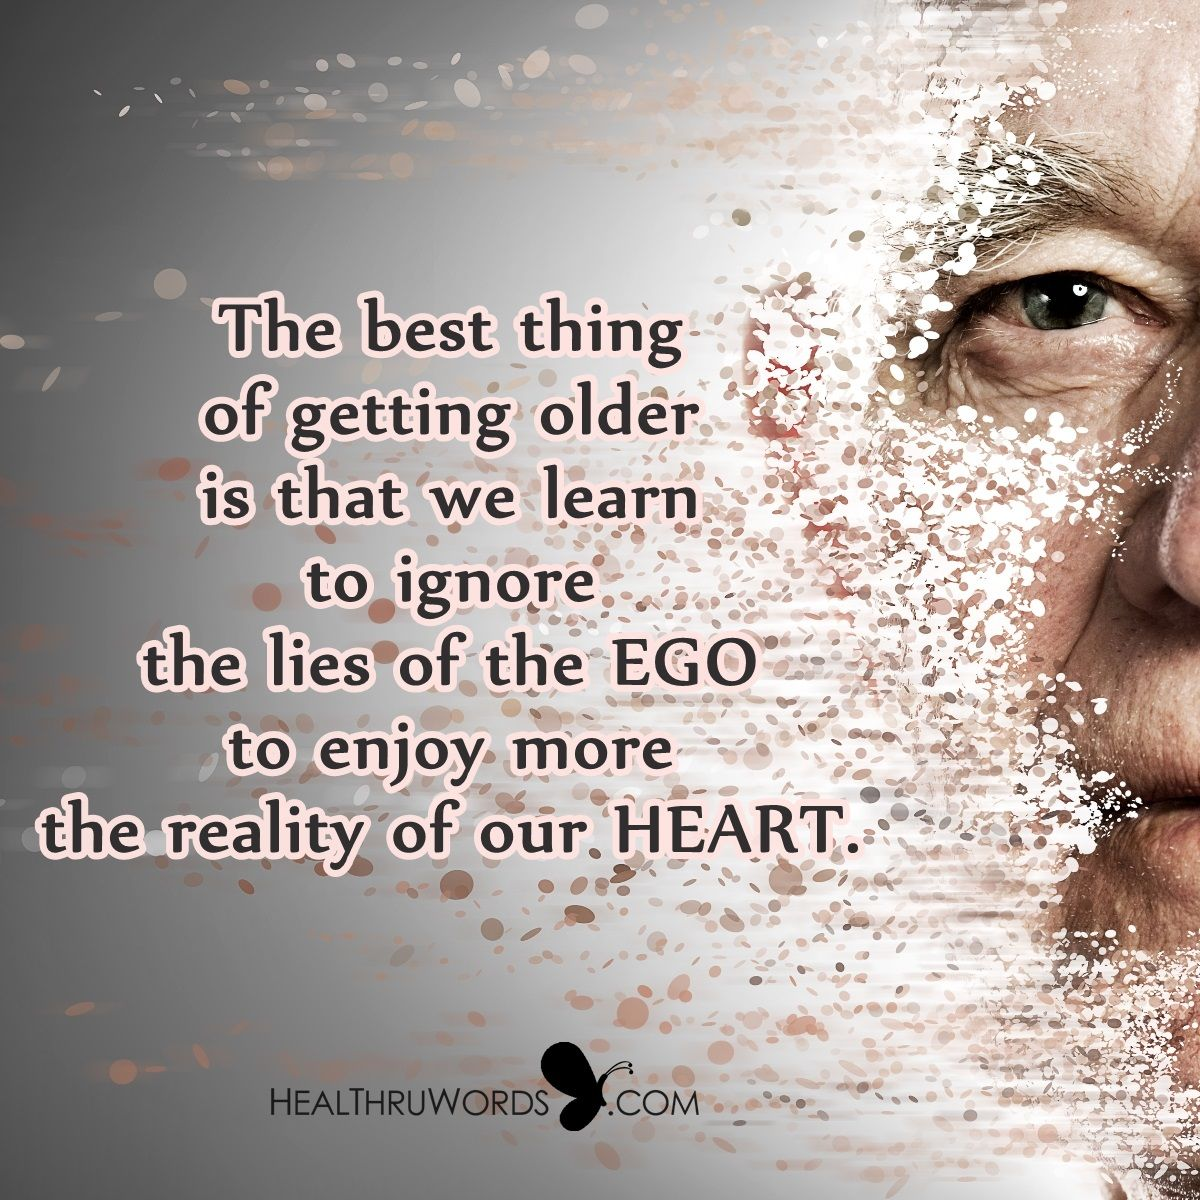 Aging From The Heart The Best Thing Of Getting Older Is That We Learn To Ignore The Lies Of T Inspirational Pictures Motivational Images Inspirational Quotes